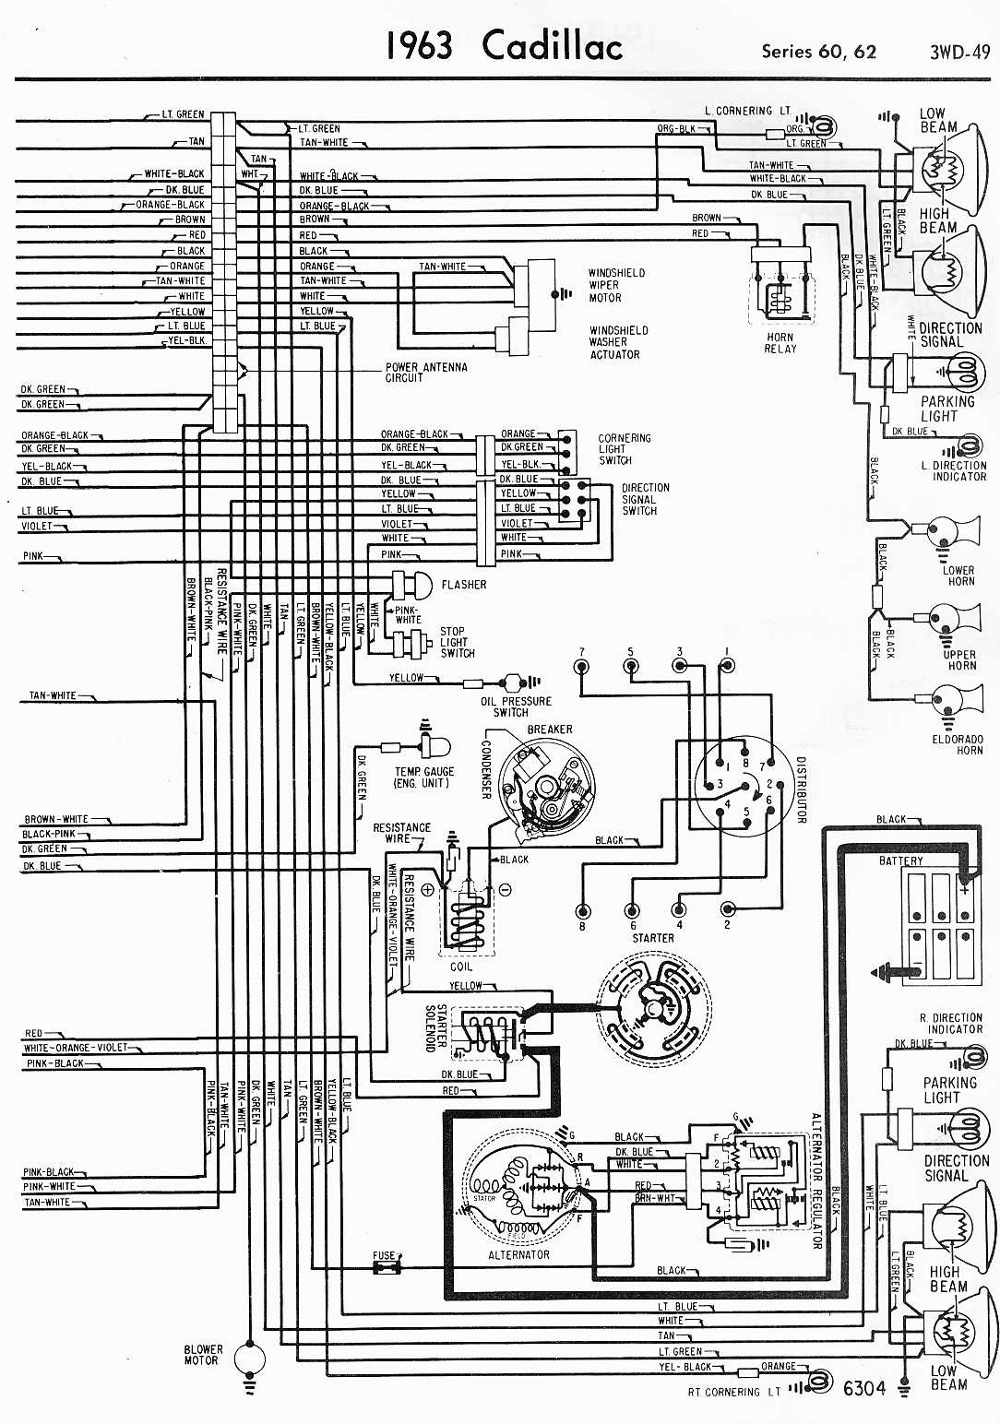 1960 Cadillac Engine Diagram Get Free Image About Wiring 1959 Radio